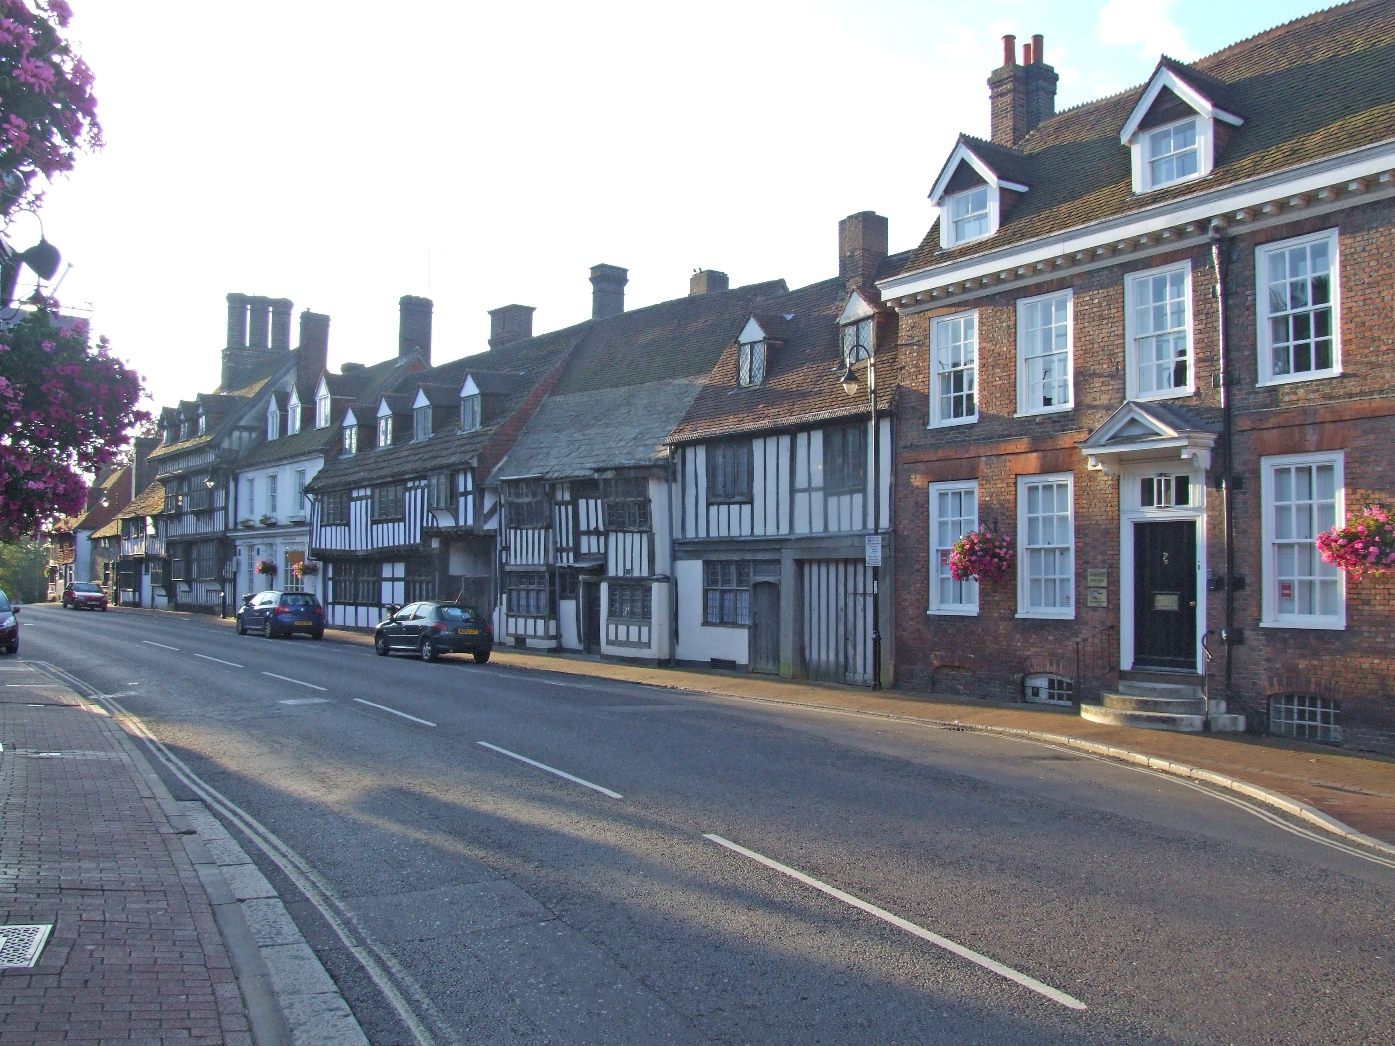 The historic High Street with half-timbered buildings © East Grinstead Town Promotions